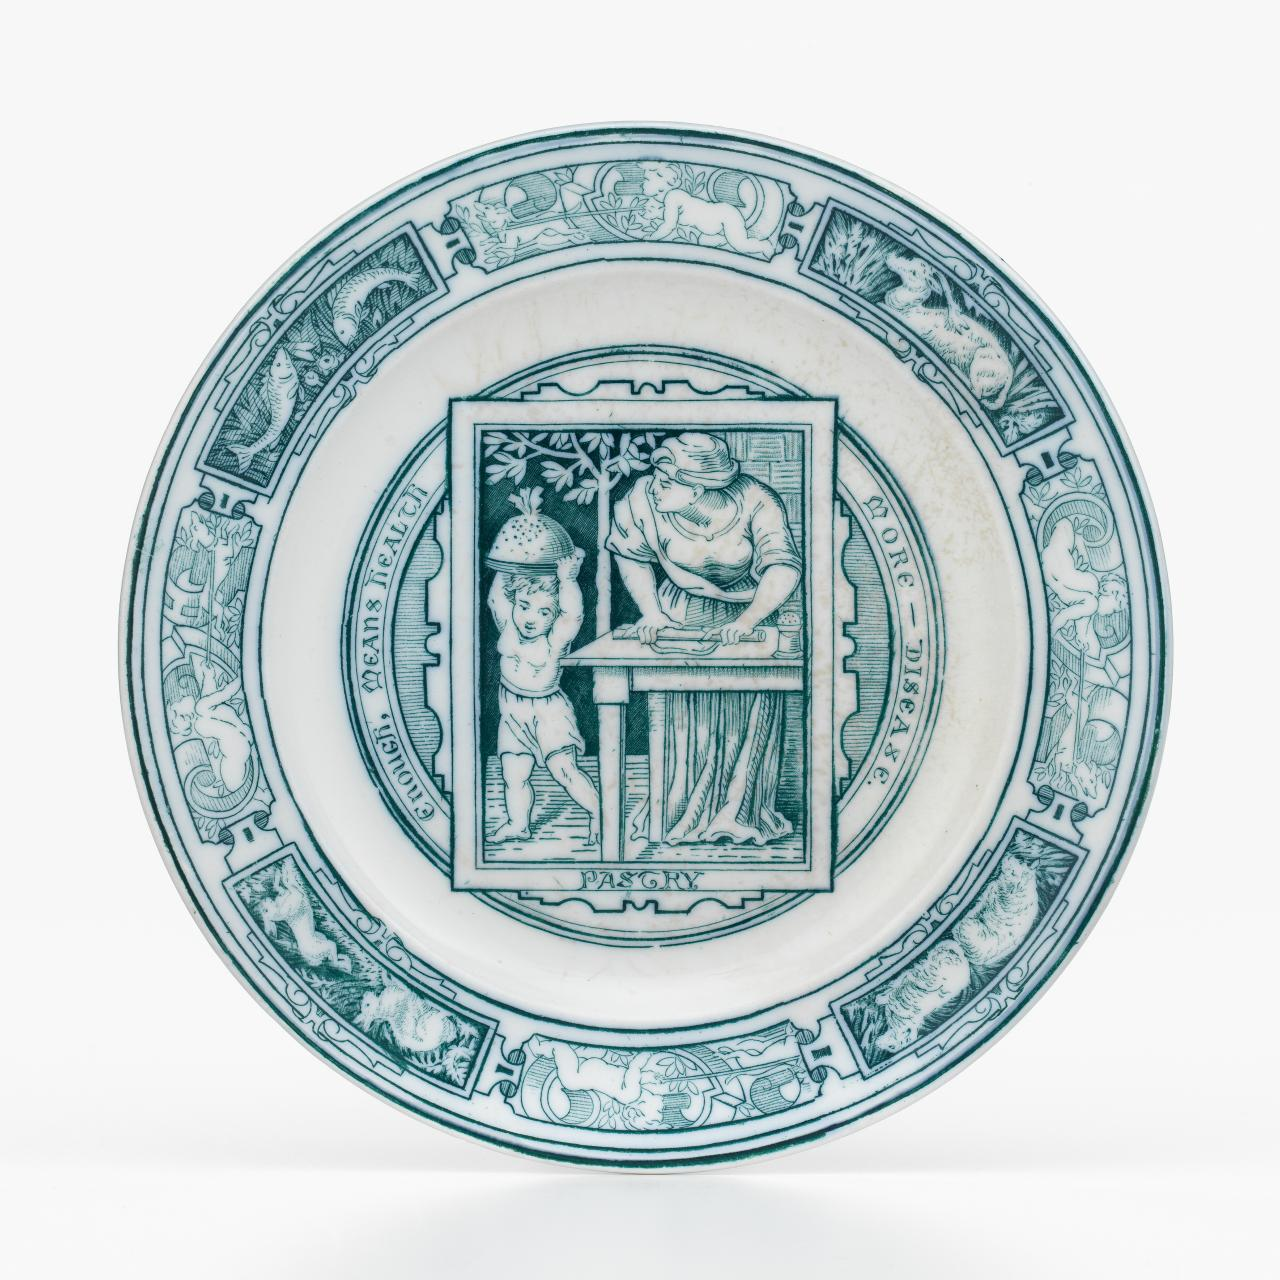 Banquet service pattern, side plate